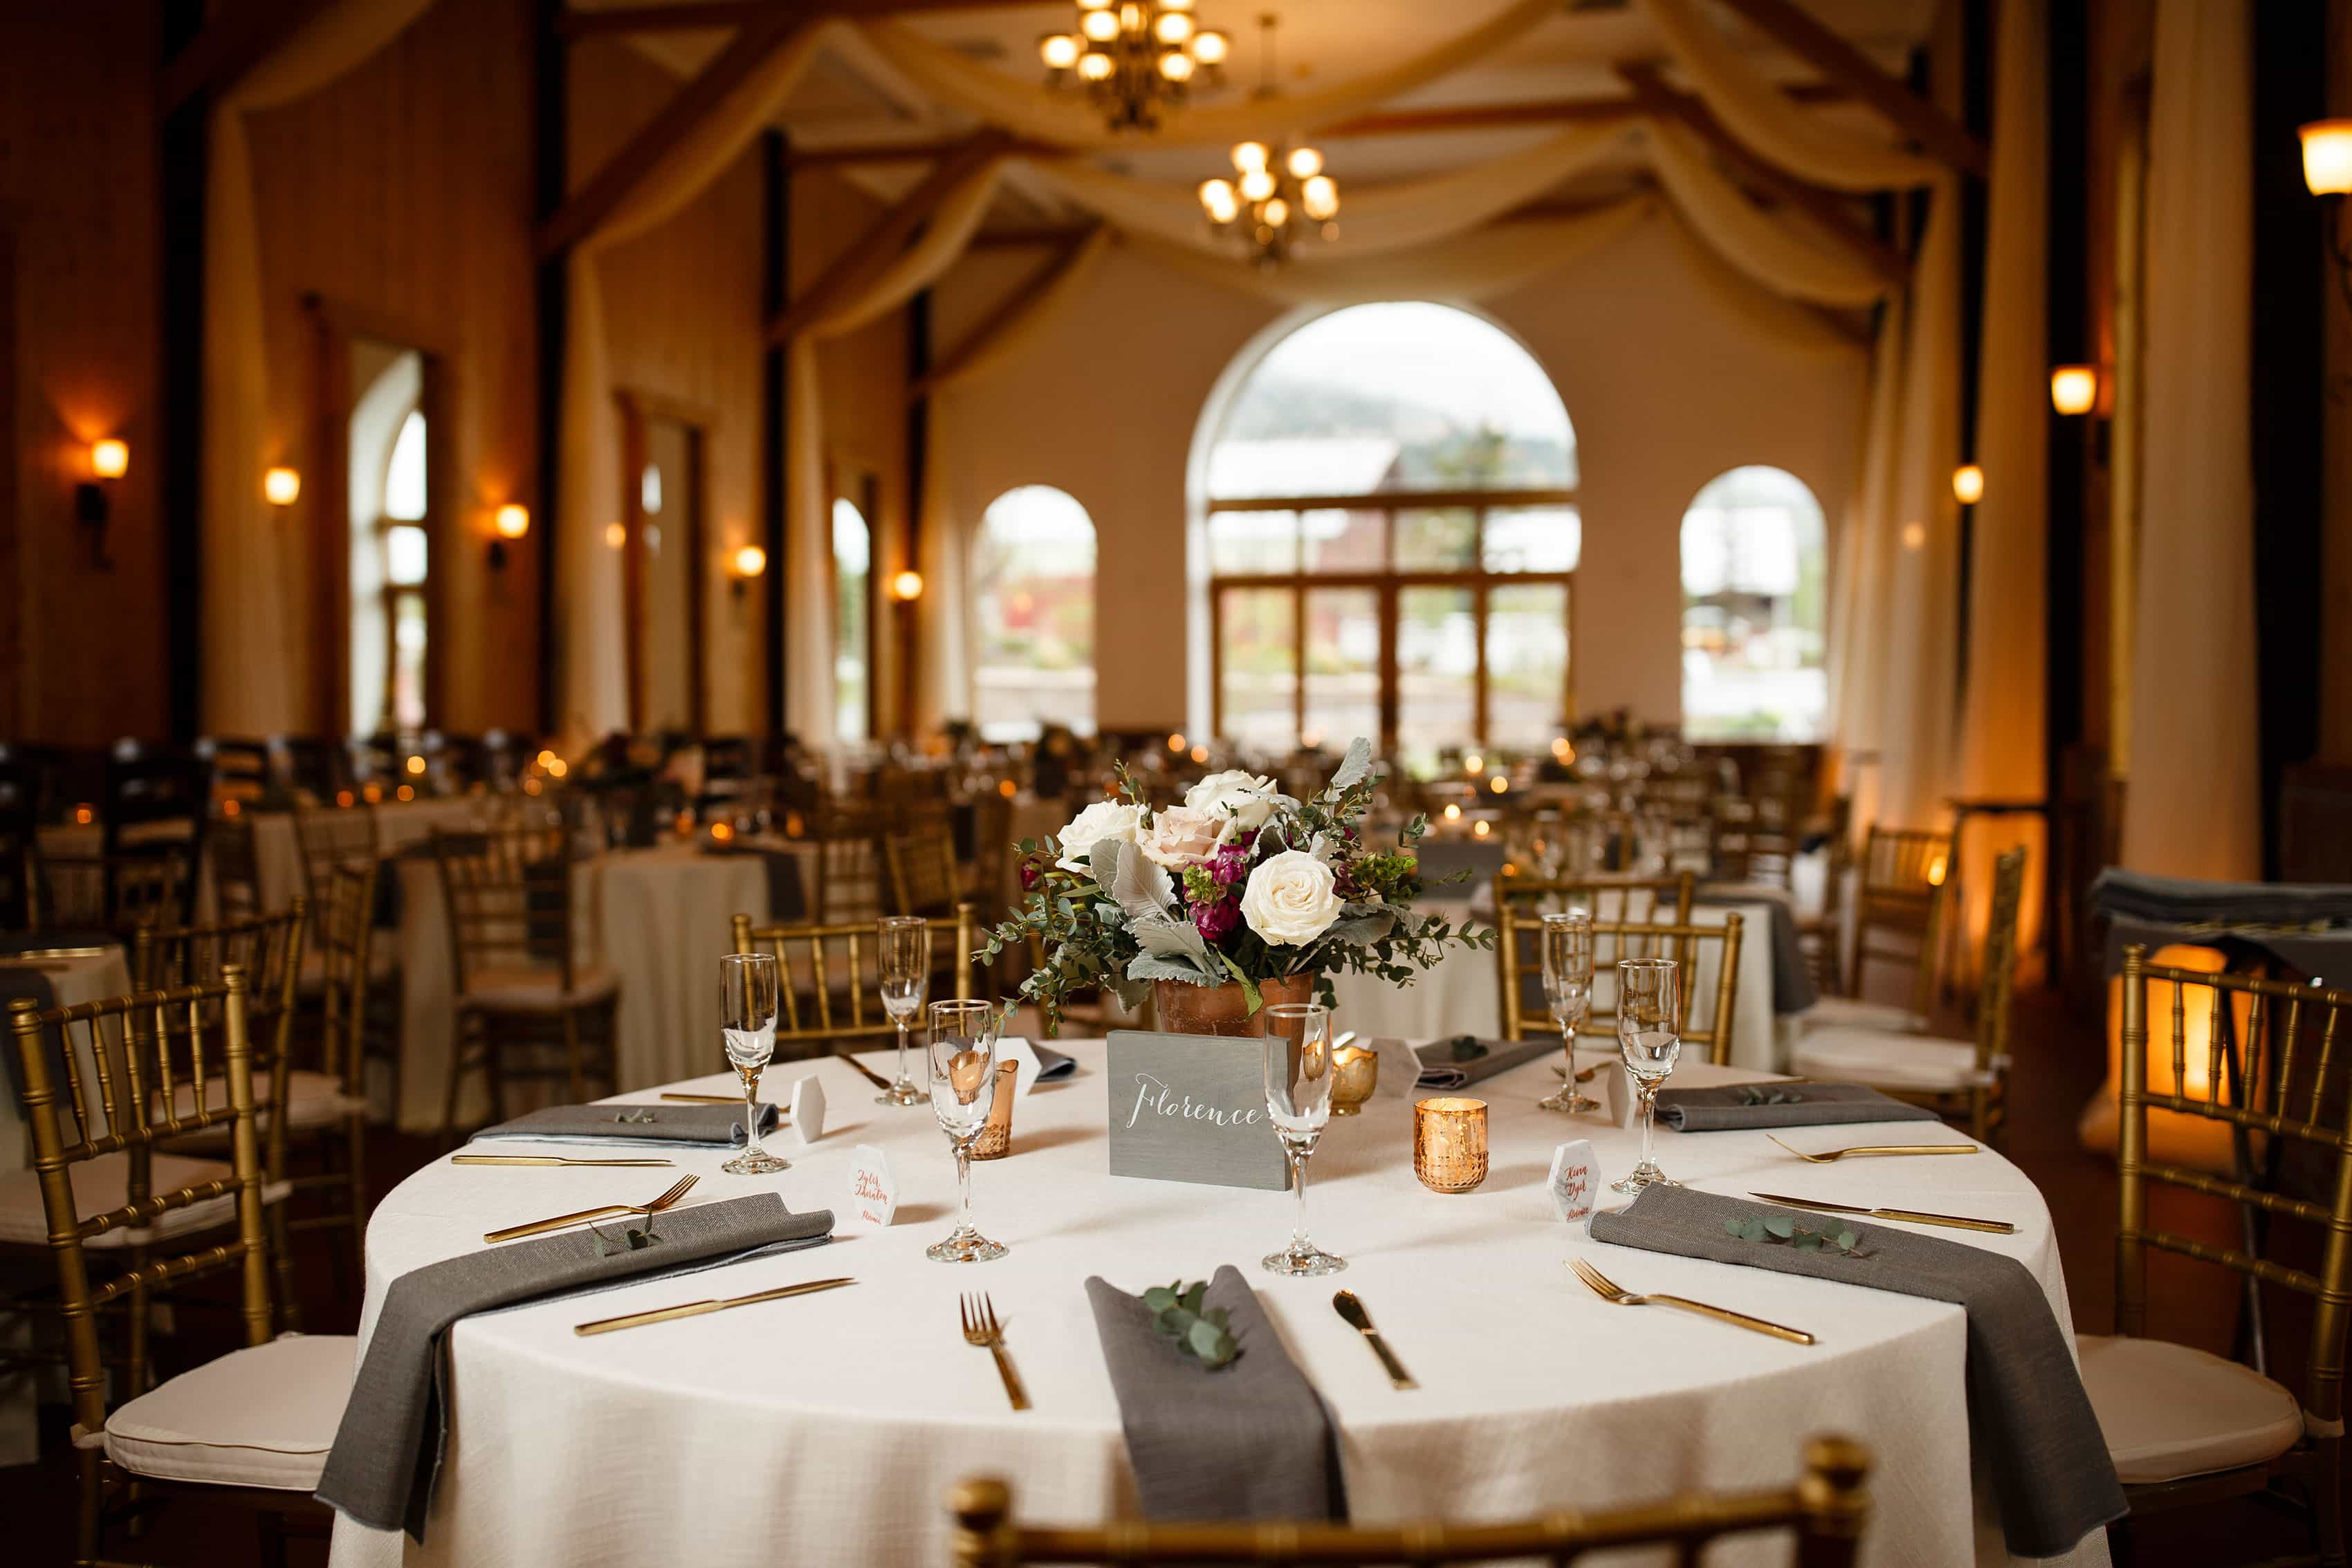 Tables setup for a wedding reception at Crooked Willow Farms